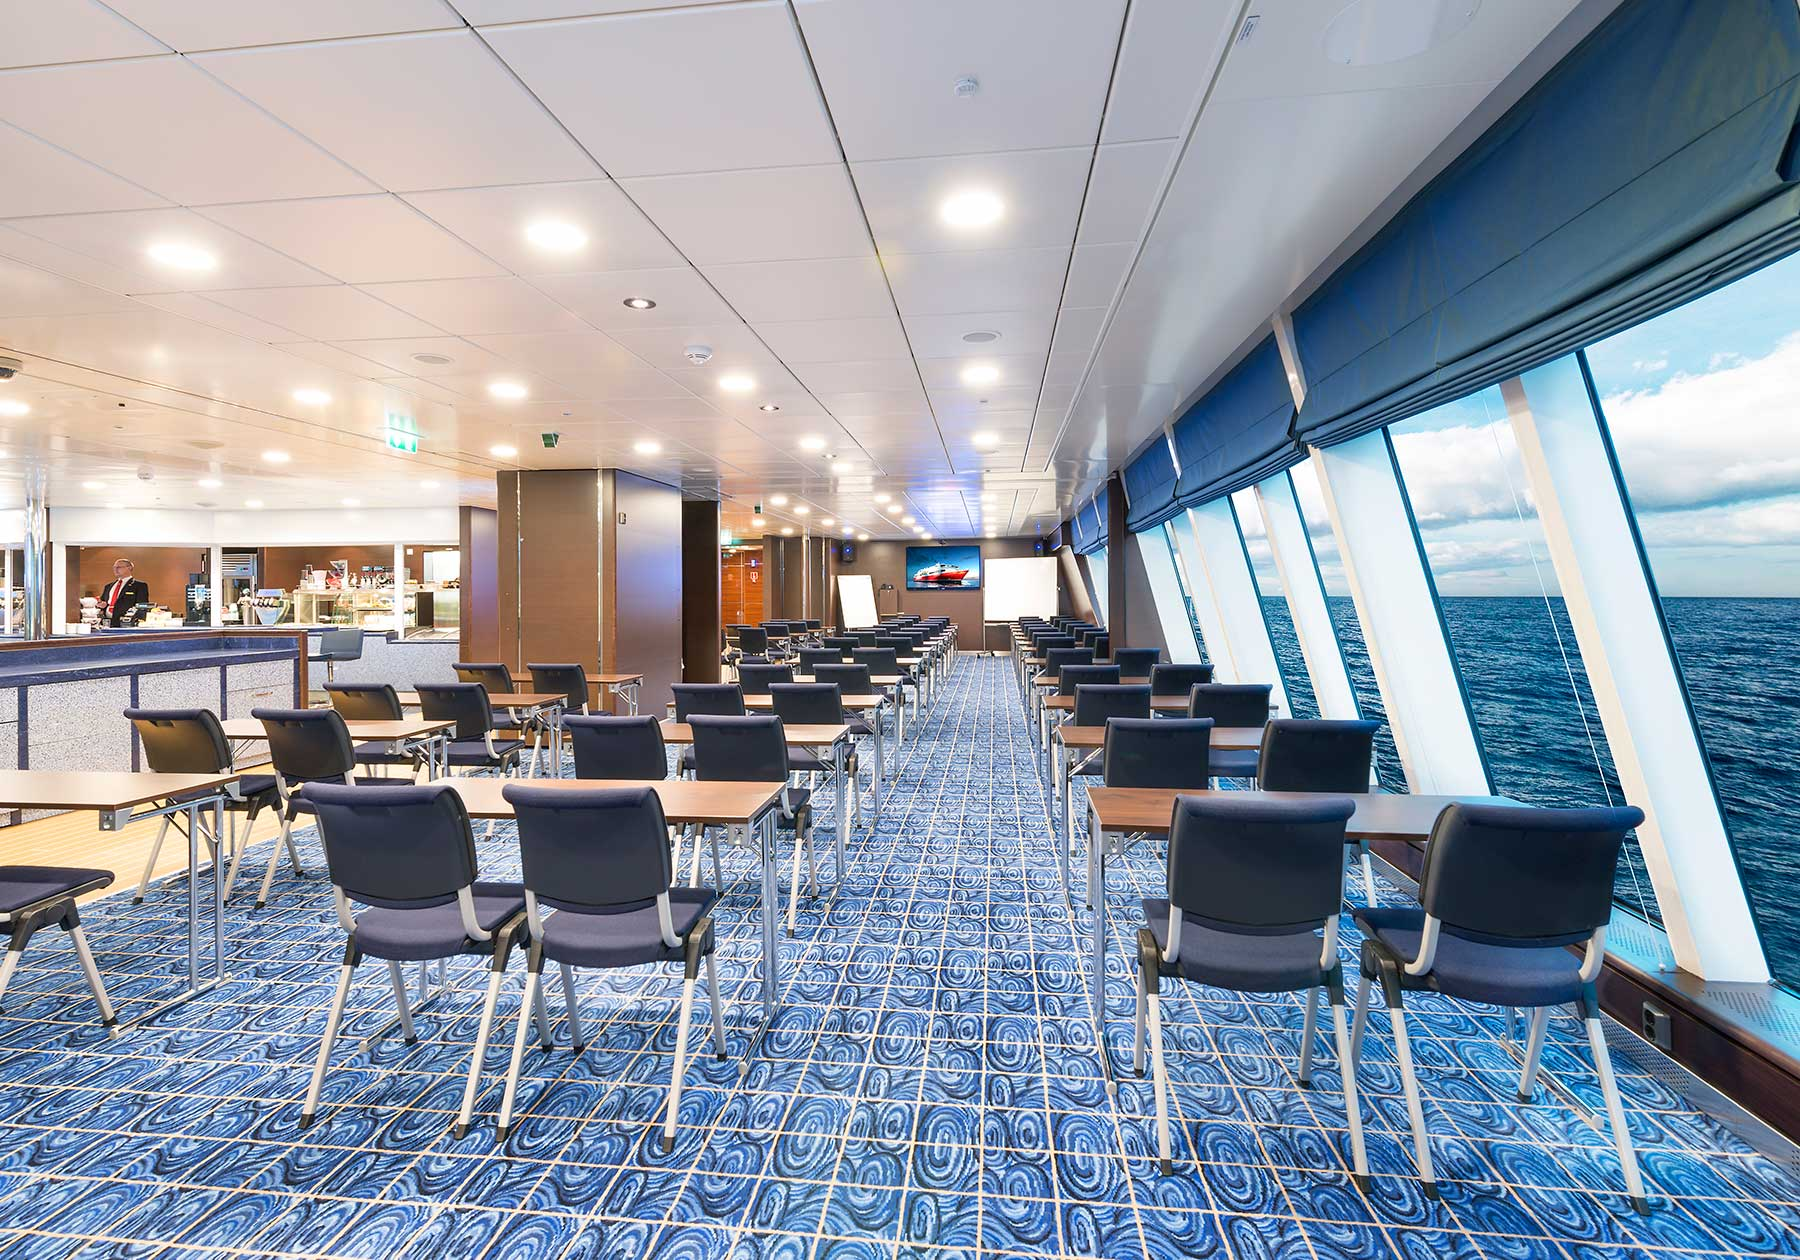 Conference rooms with modern facilities and sea views.